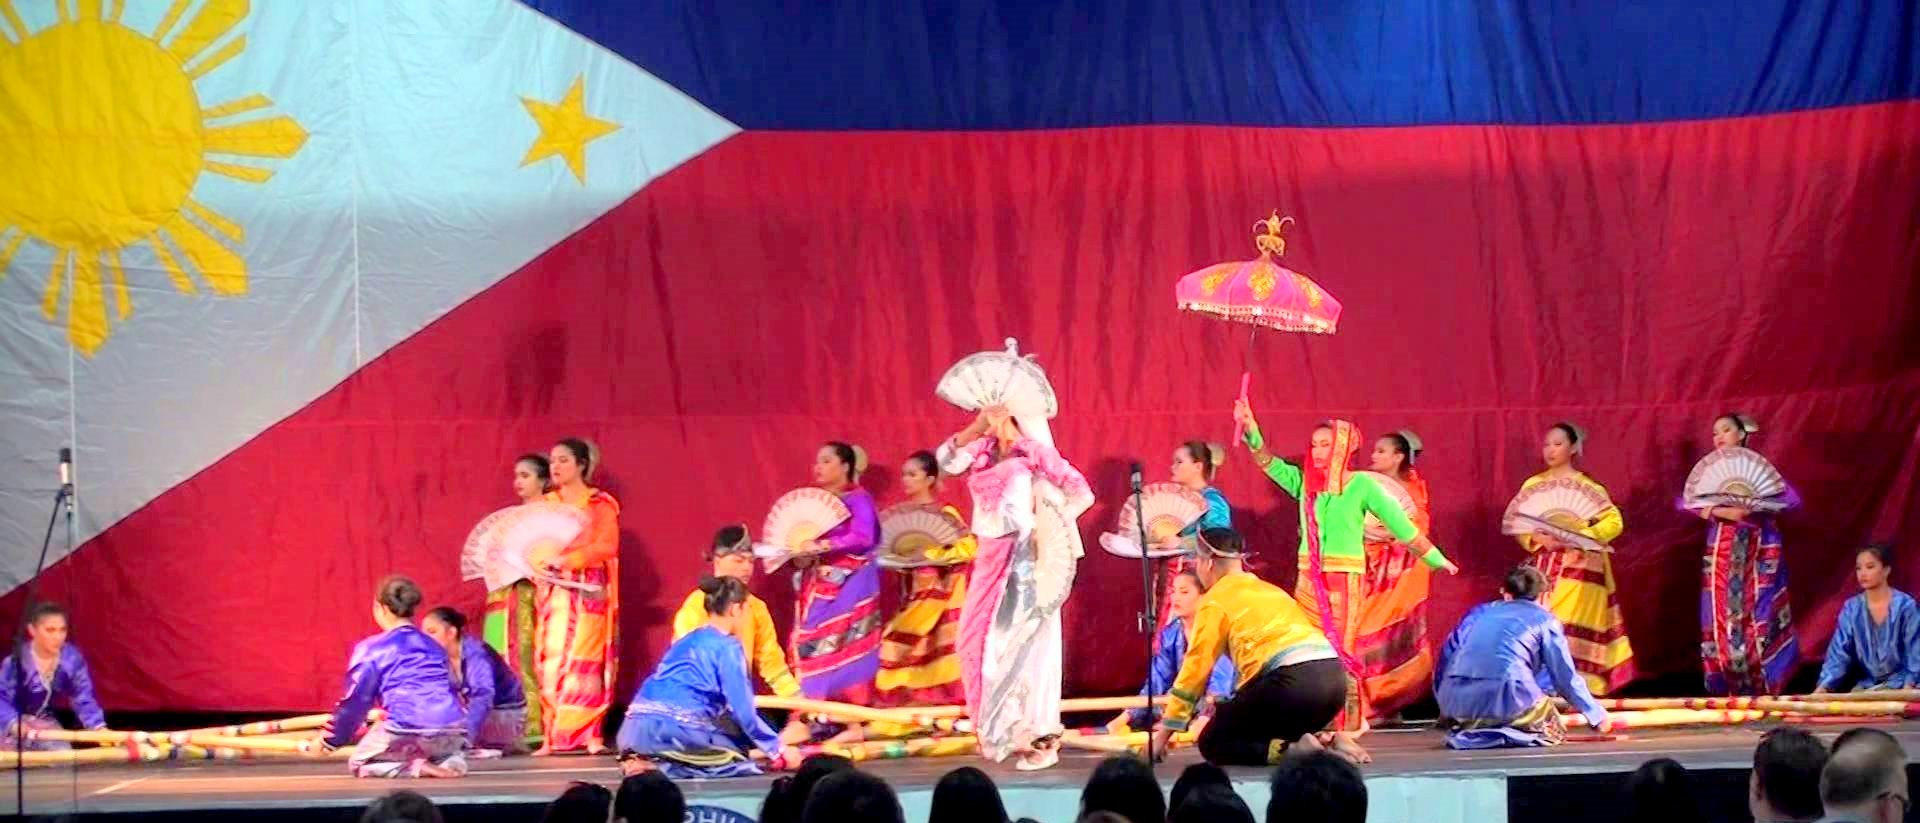 Philippine Folk Dance at Carassauga 2015 YouTube video by Leon Balaban Google image from https://www.youtube.com/watch?v=3f7ELmrV5L0